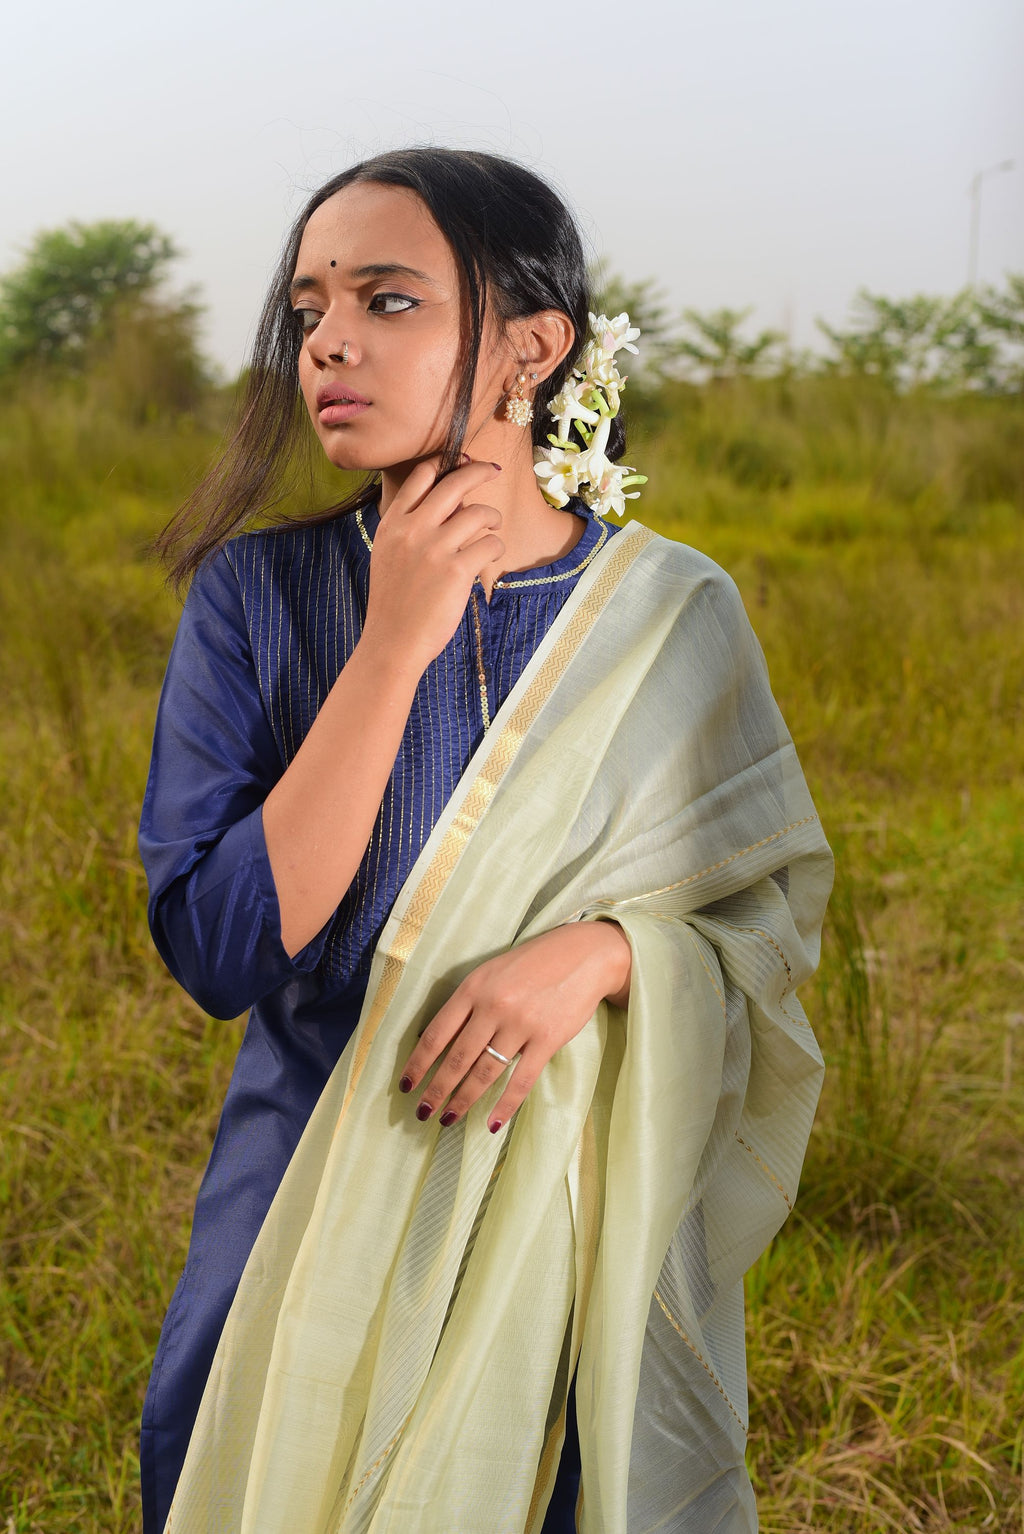 Kaisori Noor collection - Maheswari green silk cotton dupatta - Kaisori